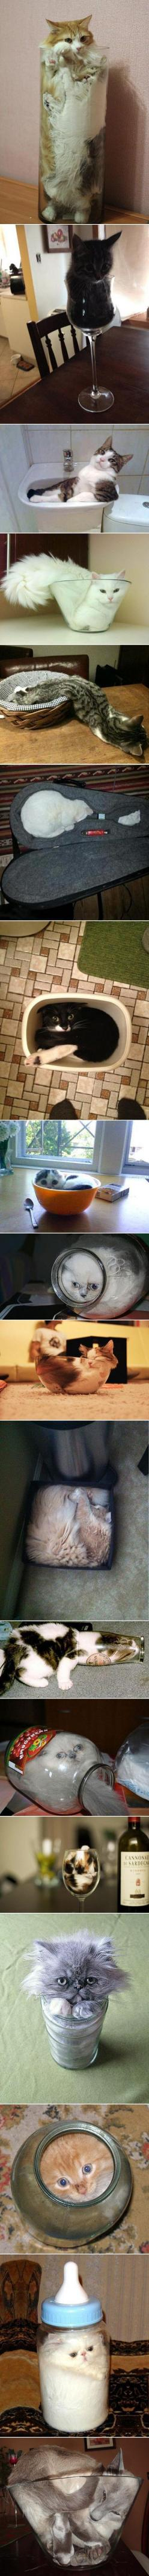 Cats Are A Liquid (compilation): Fit, Kitty Cats, Funny Cats, Container, Proof Cats, Crazy Cat, Liquid Cats, Animal